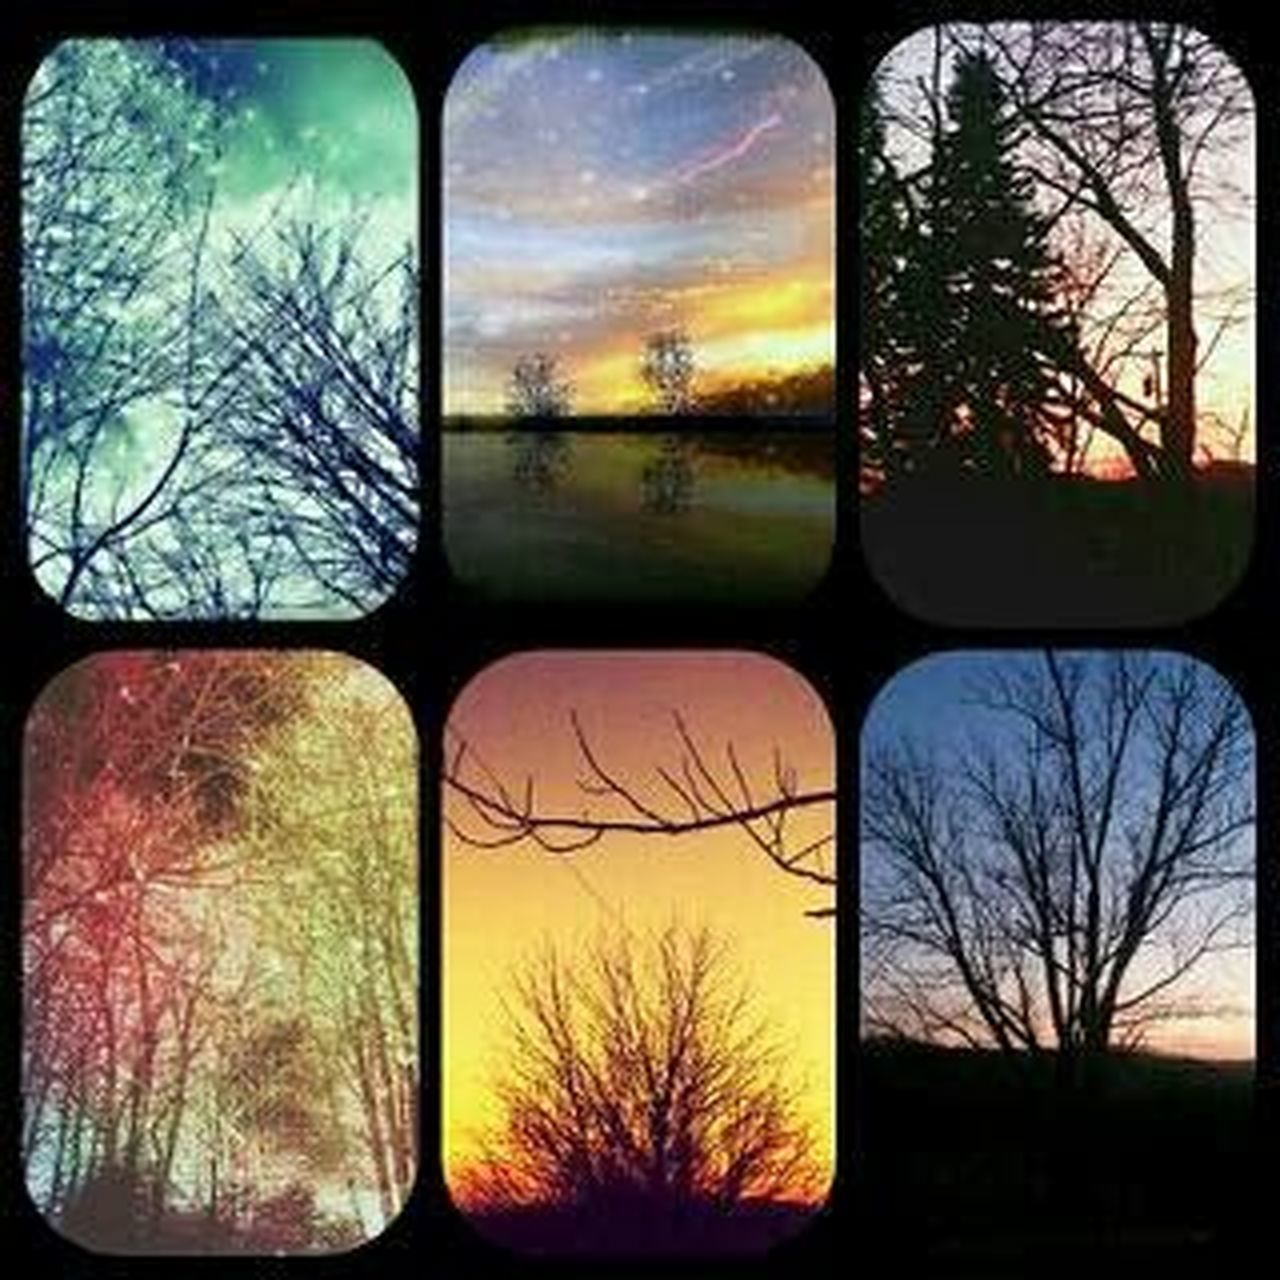 bare tree, tree, branch, no people, autumn, outdoors, sunset, nature, multi colored, sky, day, beauty in nature